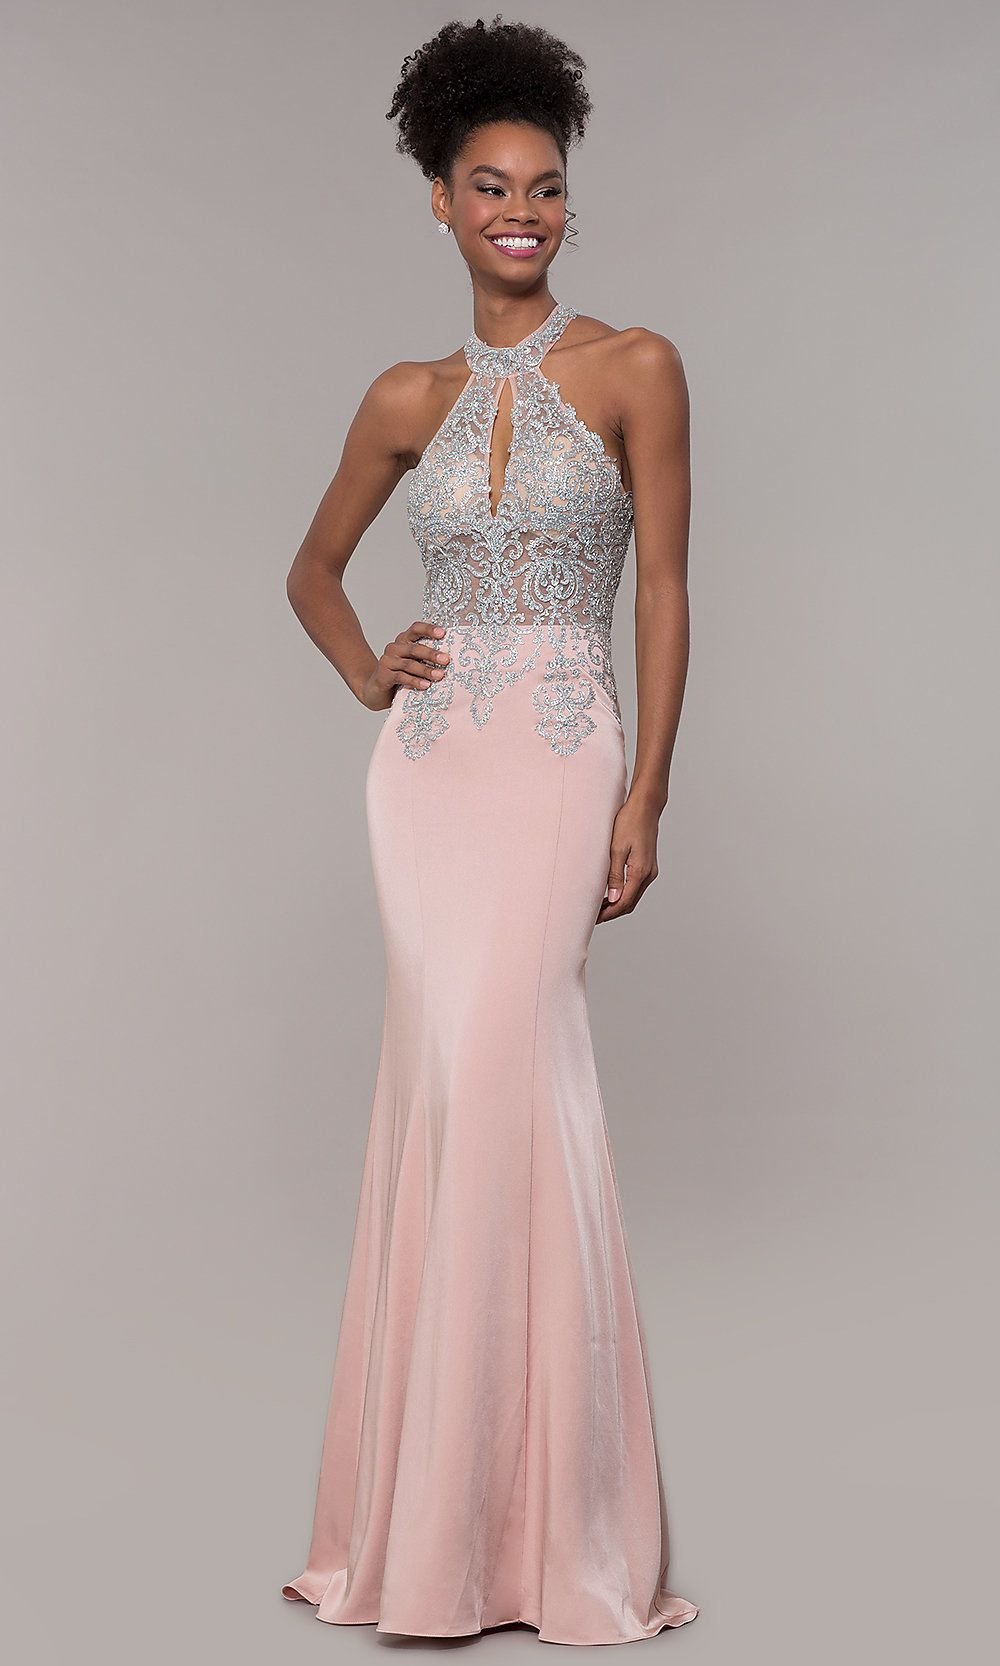 346ba48cabb High-Neck Embroidered JVNX by Jovani Long Prom Dress in 2019